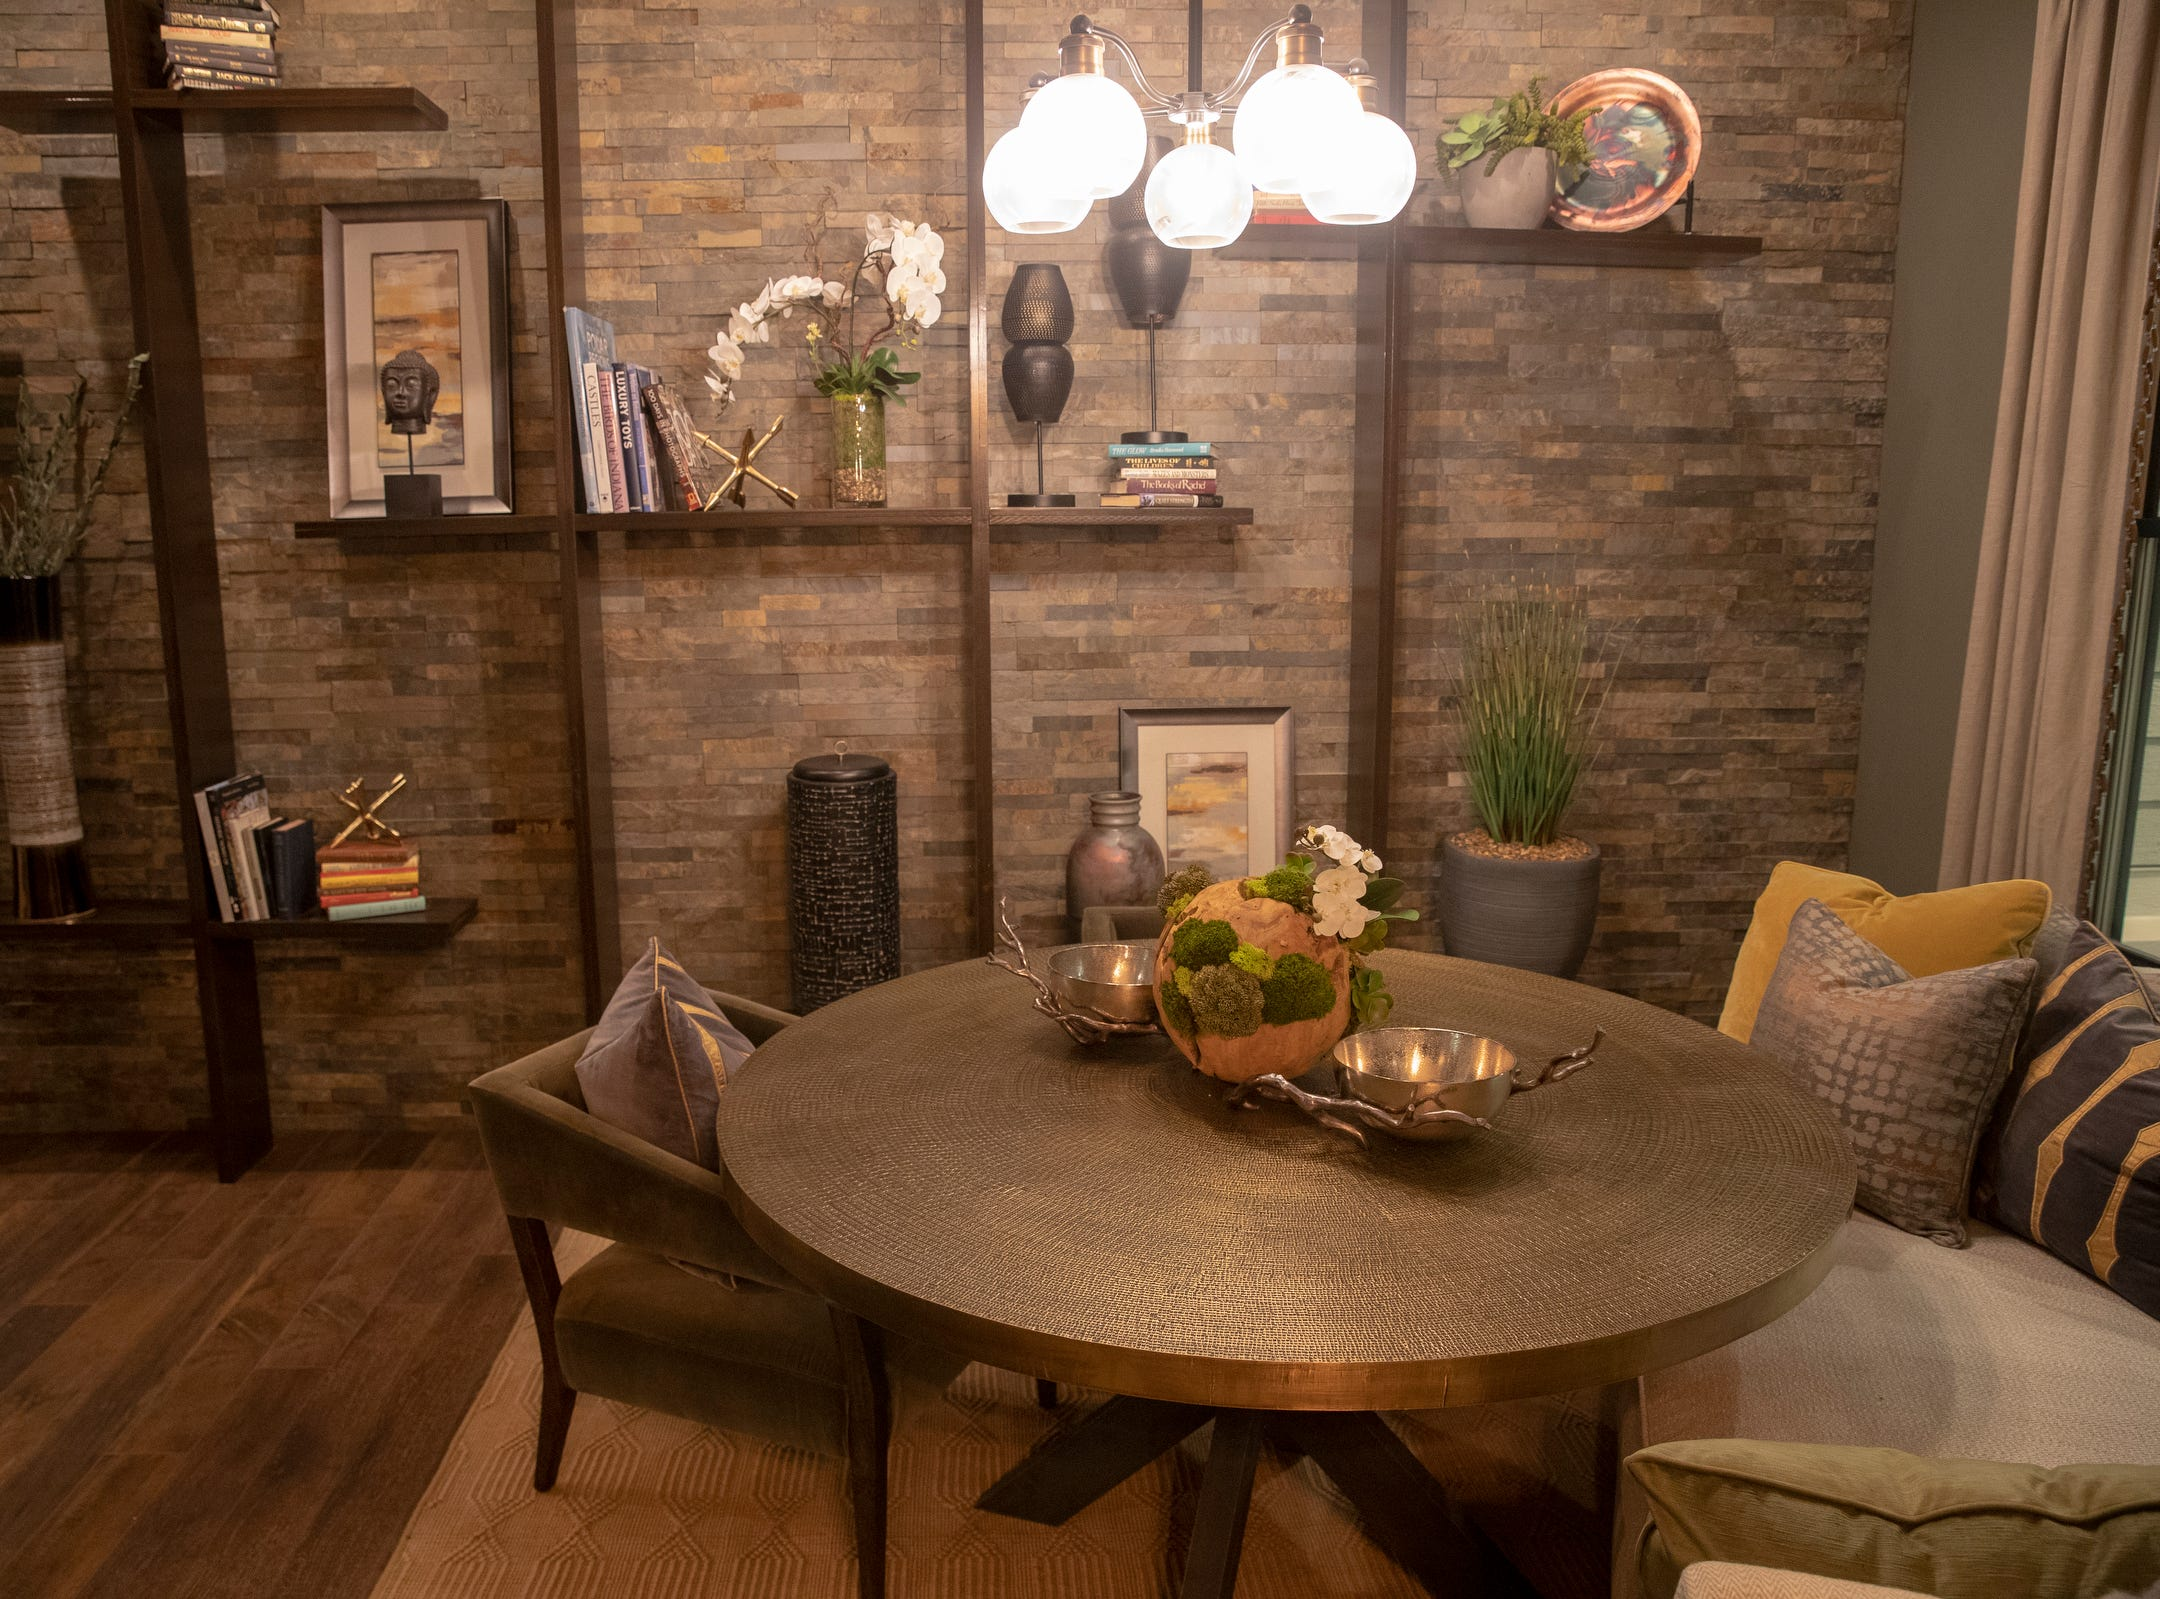 Centerpiece Home at the Indianapolis Home Show, Indiana State Fairgrounds, Indianapolis, Thursday, Jan. 17, 2019. The home, which is open through January 27 was built by Davis Homes, with an interior designed by Shelby Upchurch of Luxe Home Interiors, and landscaping by Calvin Landscape.